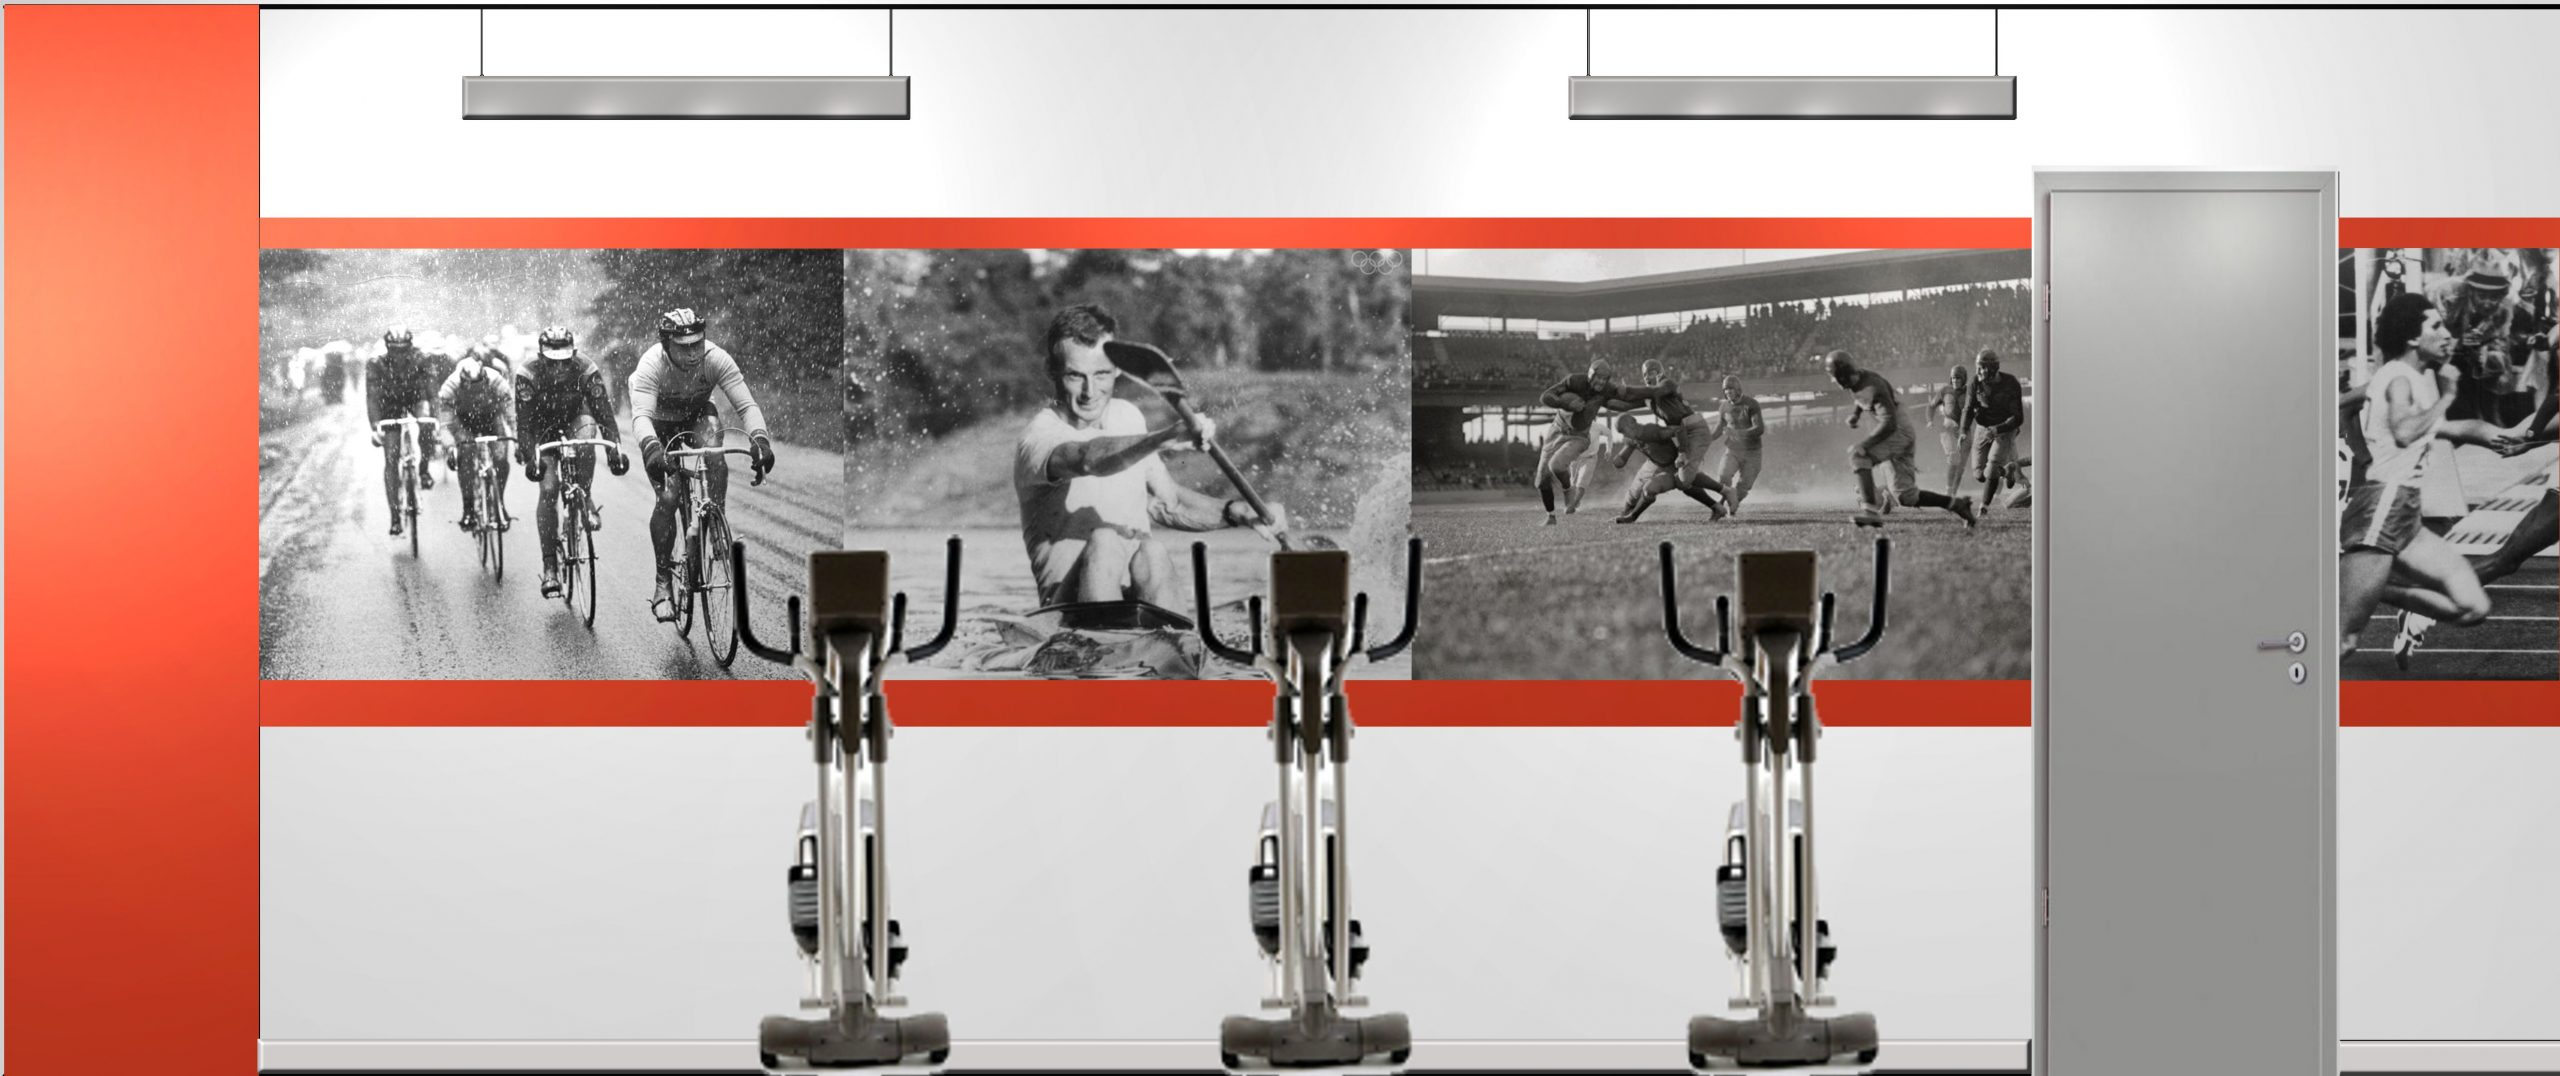 For a basement fitness center, we used large scale images of fitness and sport activities to bring interest to a windowless space.